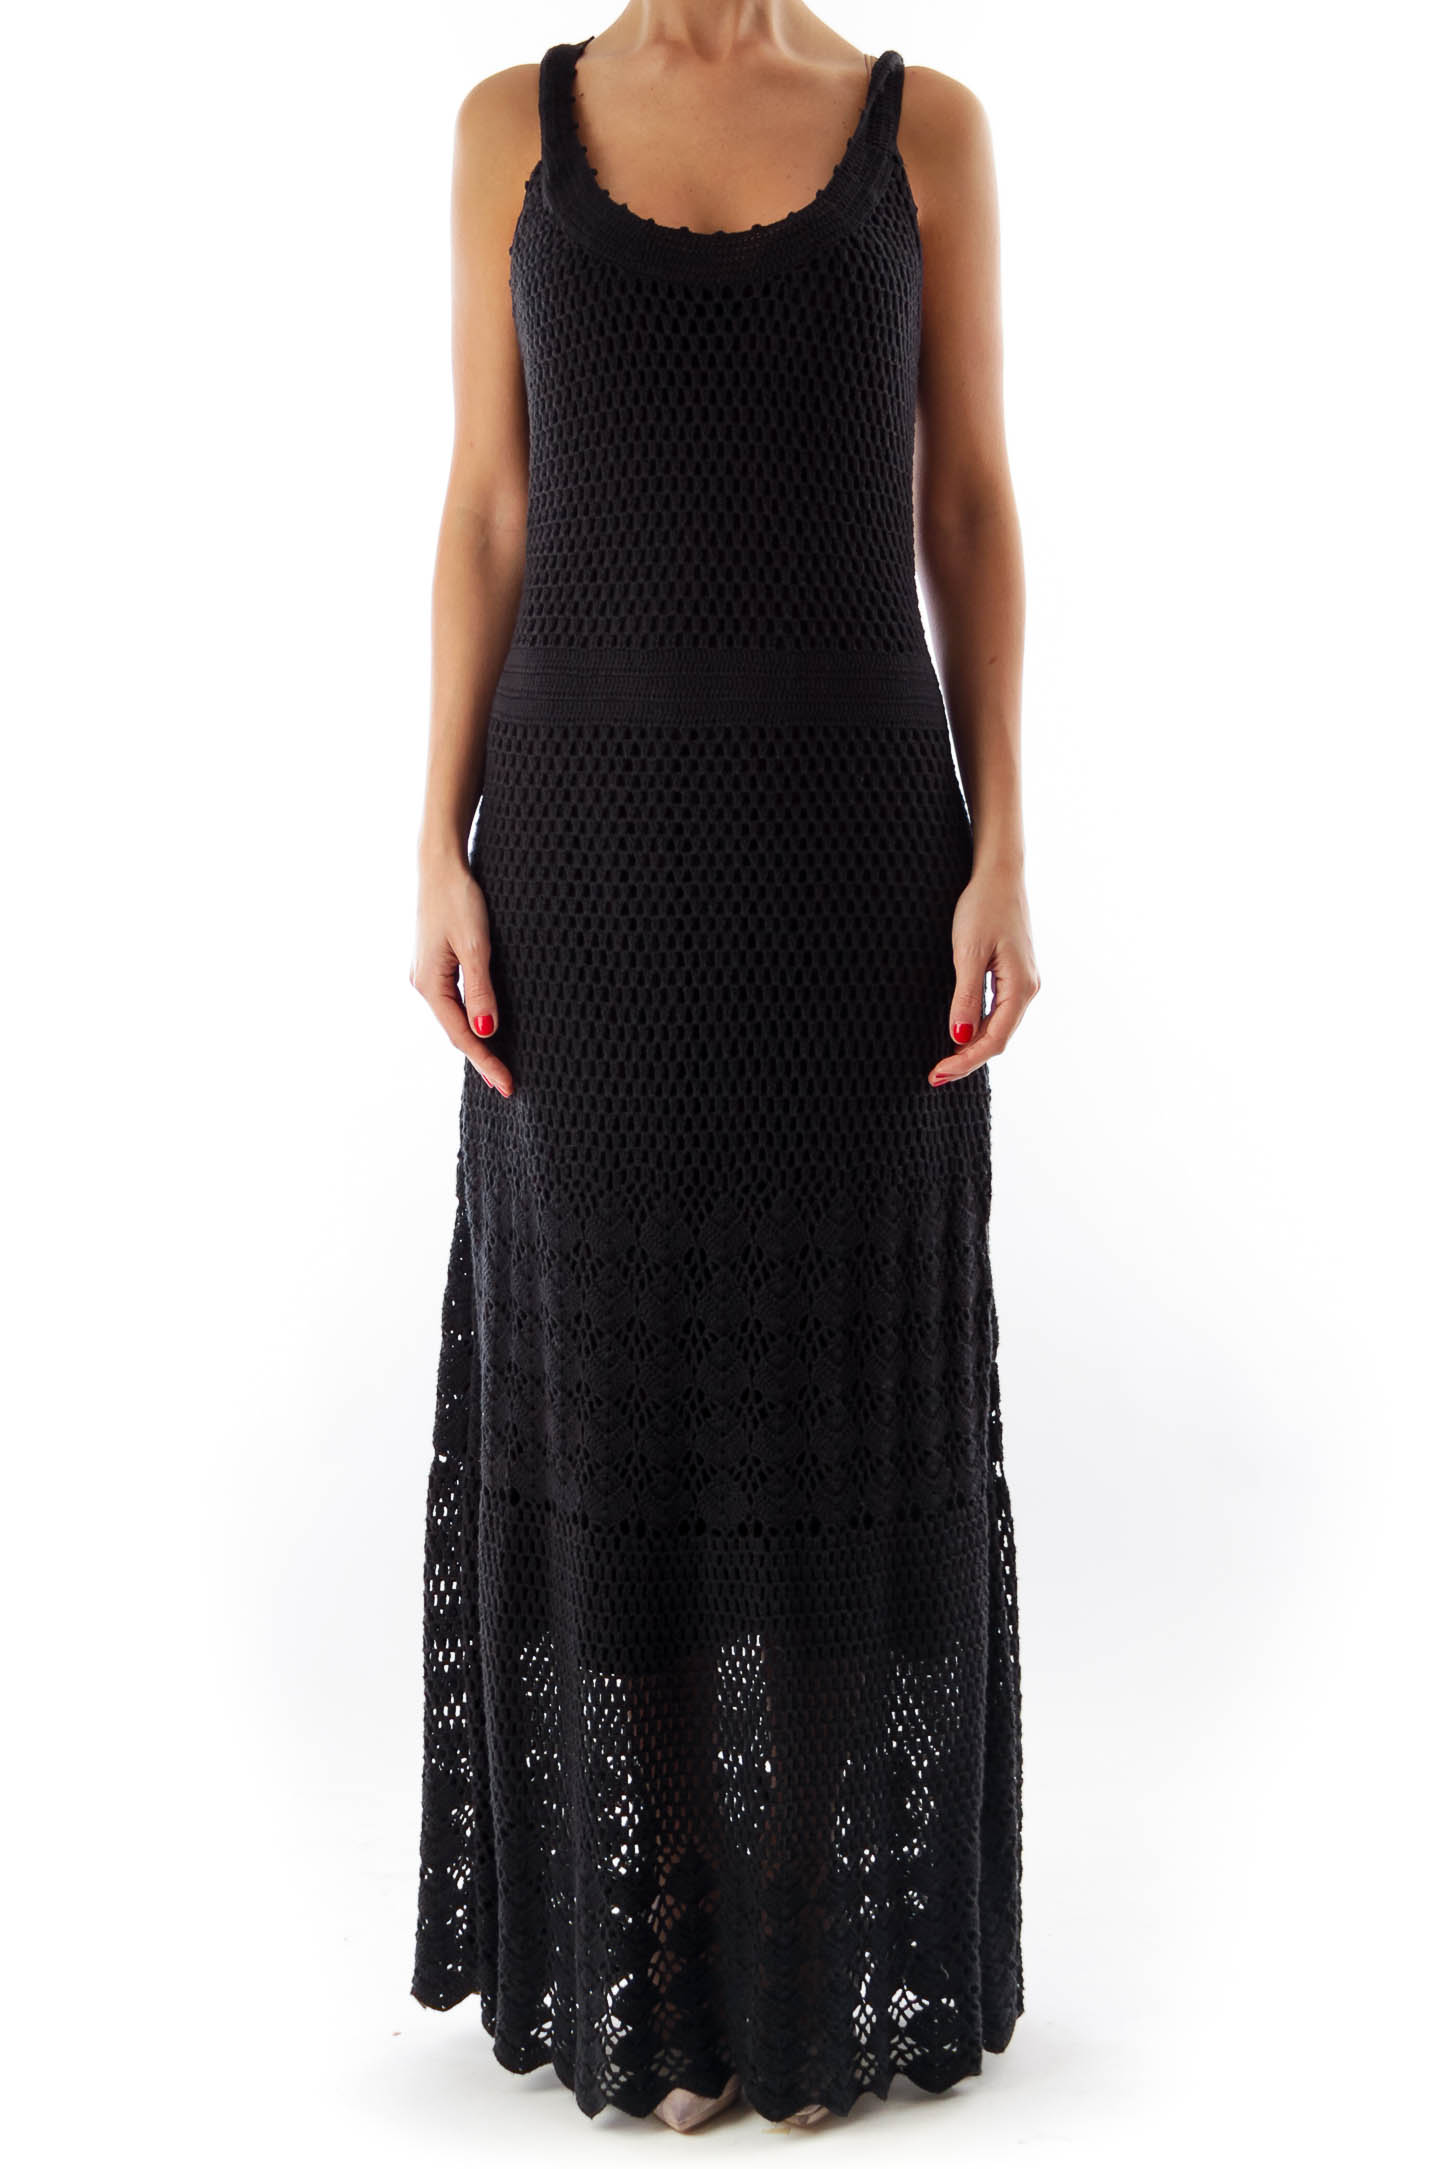 Black Crochet Long Dress